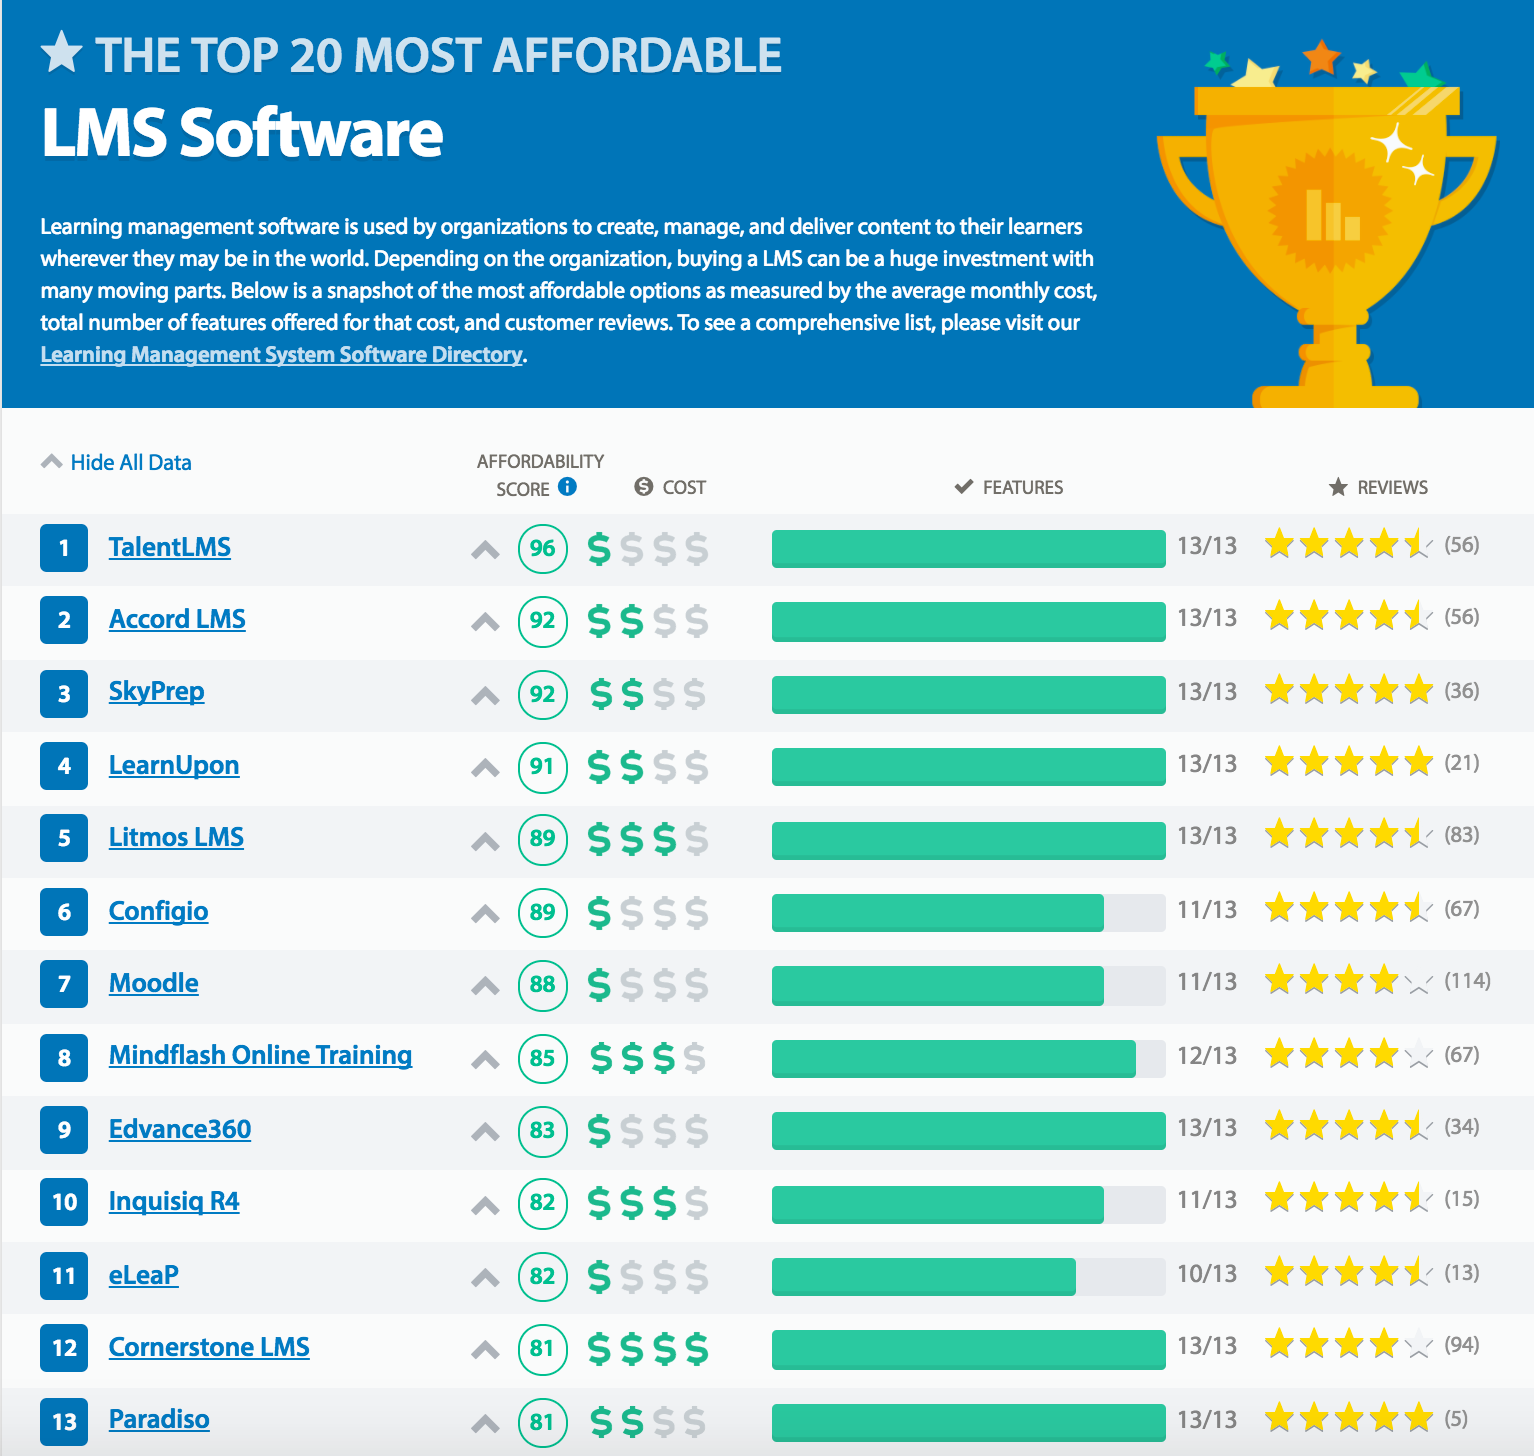 Top 20 most affordable LMS